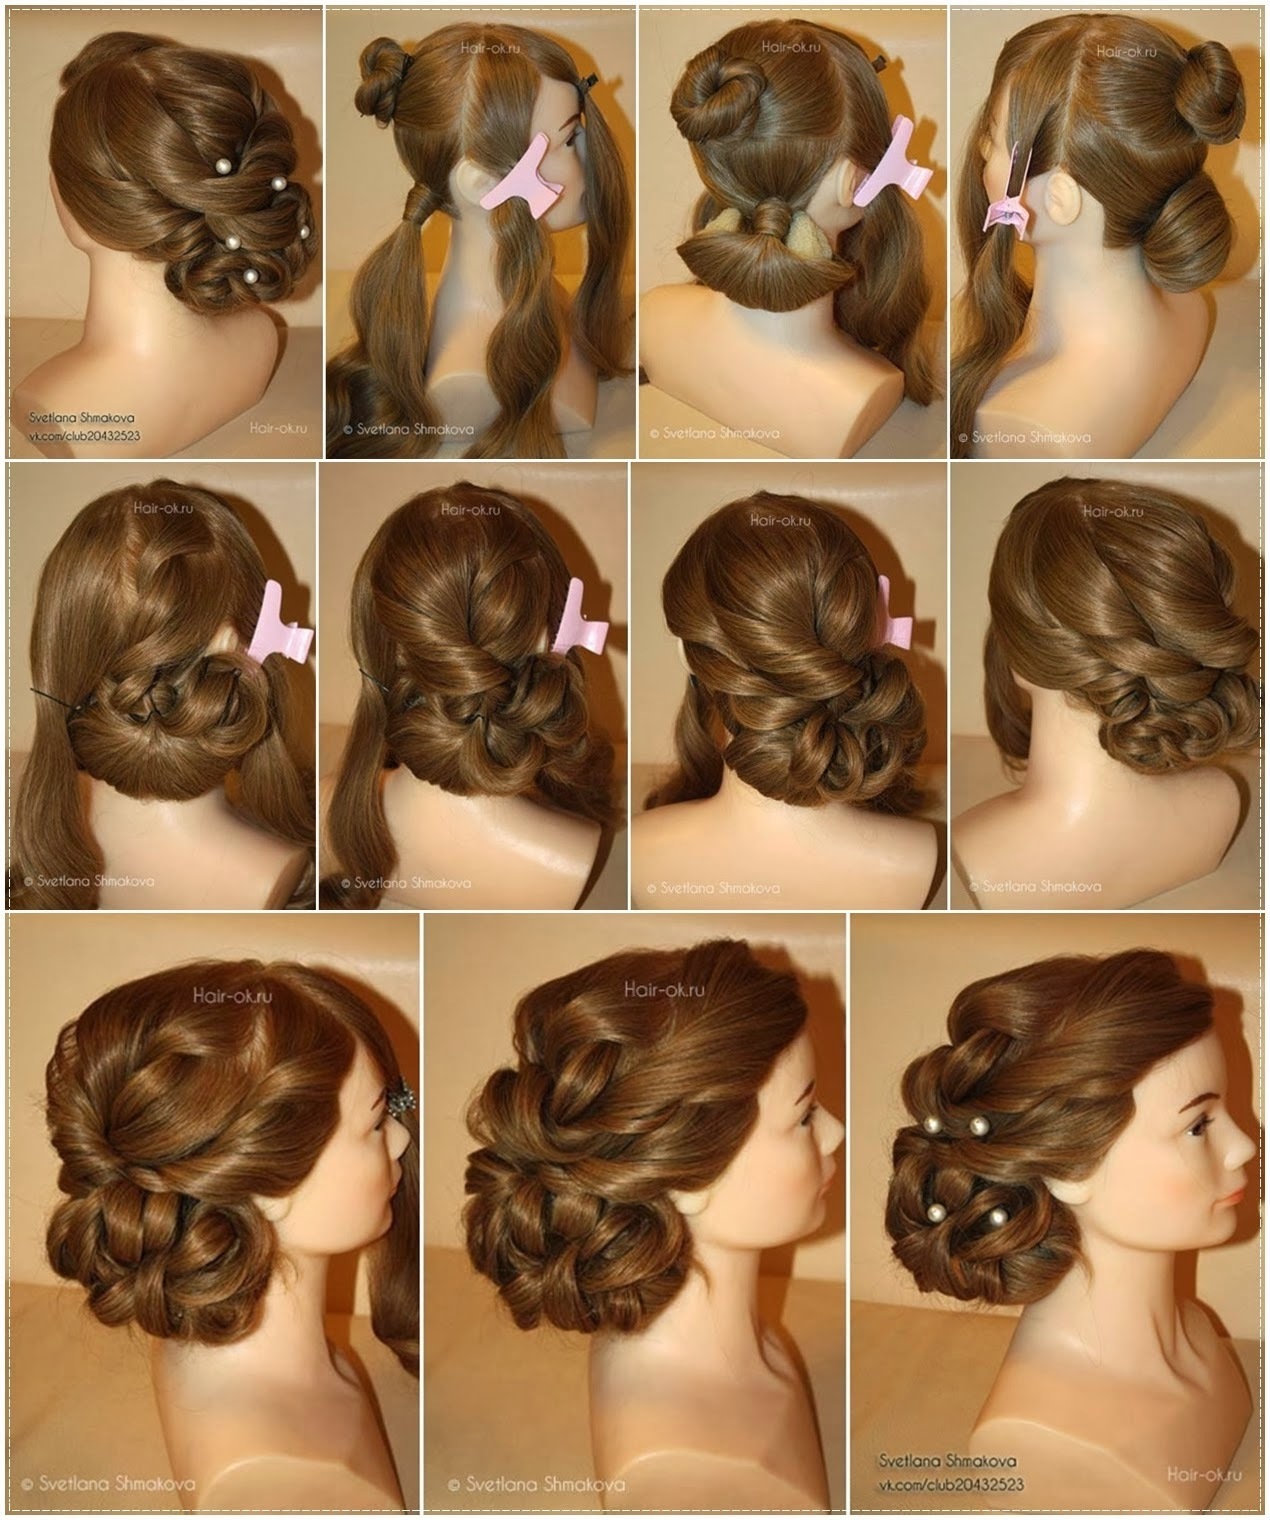 Hairstyles For Long Hair Videos Dailymotion : ... to master various hair styles hair stylists spend their whole lives to